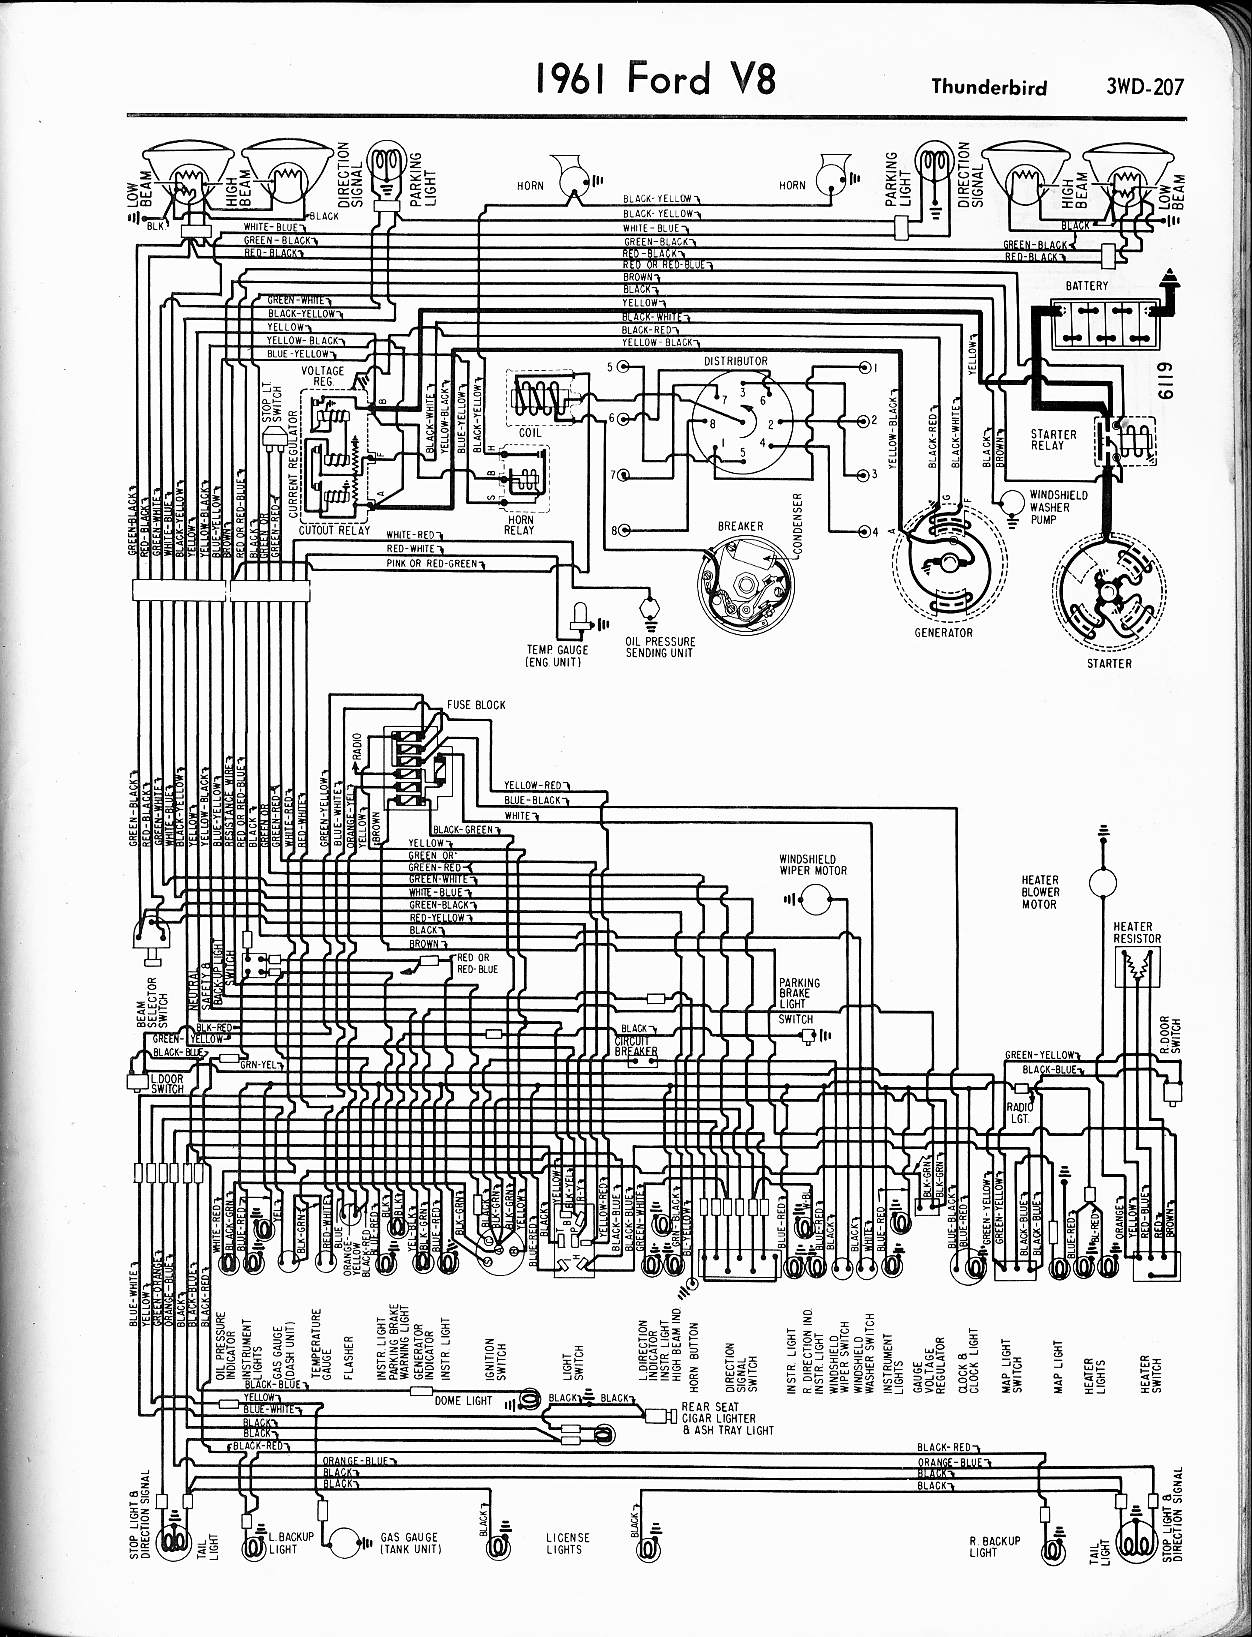 1963 ford f100 wiring schematic 1961 1963 ford f 100 wiring diagram